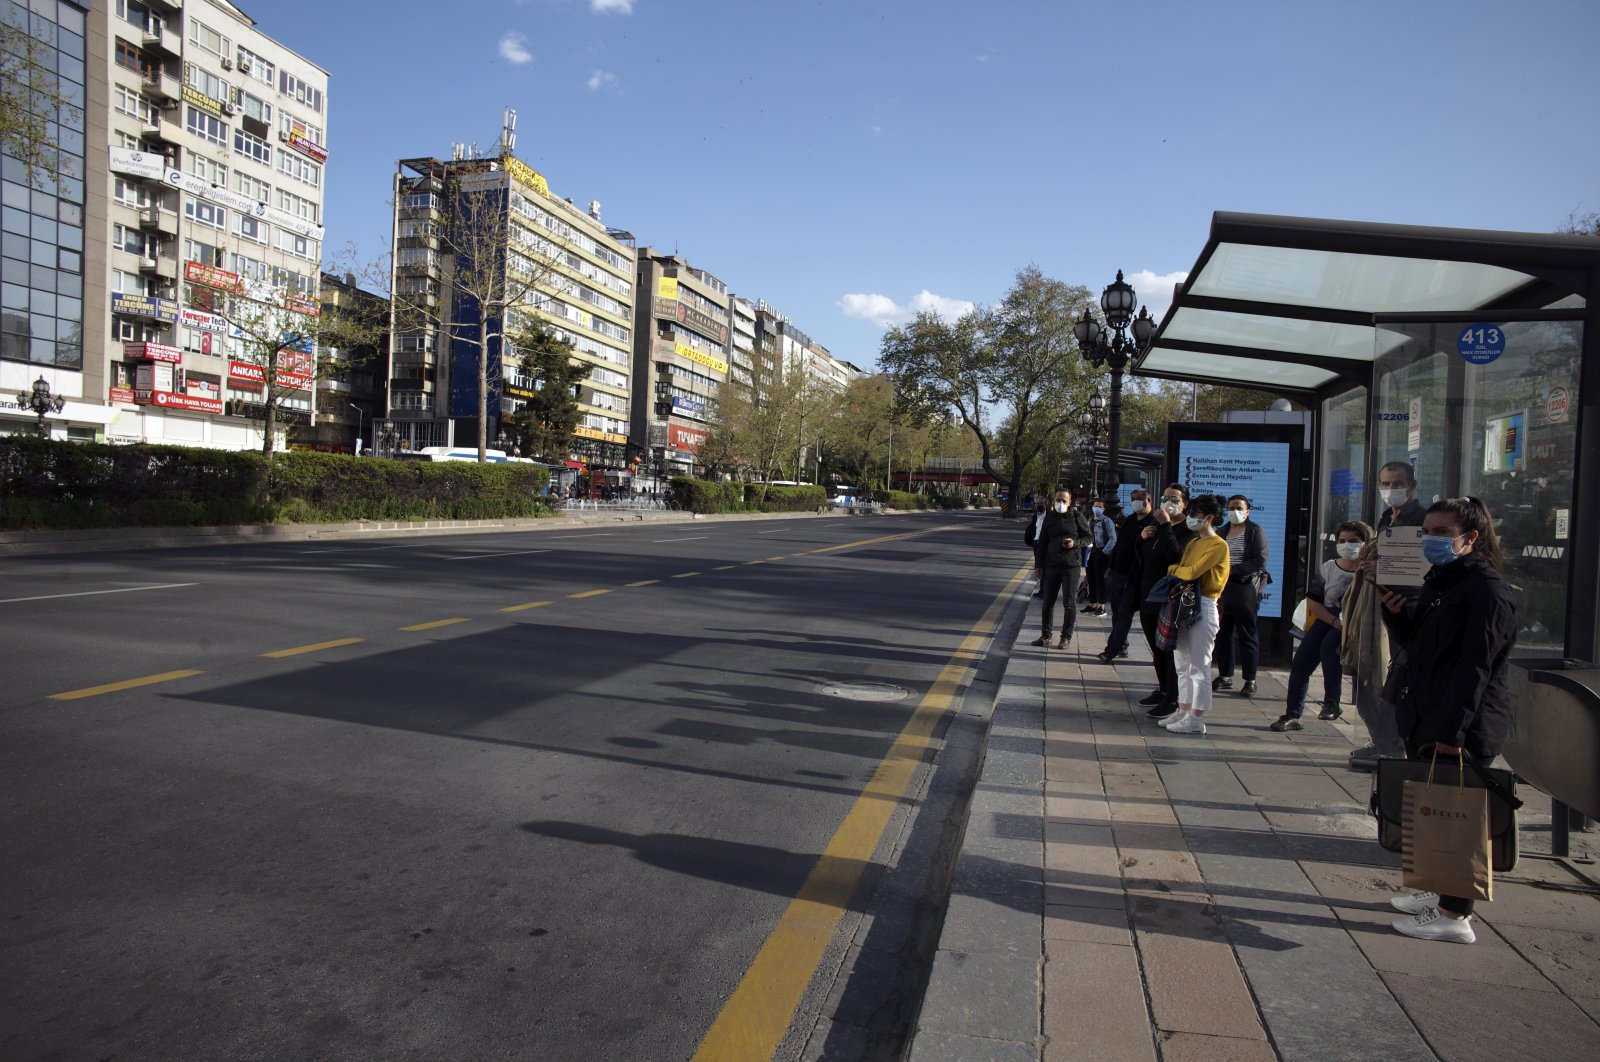 People wait for a bus on a deserted main road in Ankara, Turkey, April 30, 2021. (AP Photo)